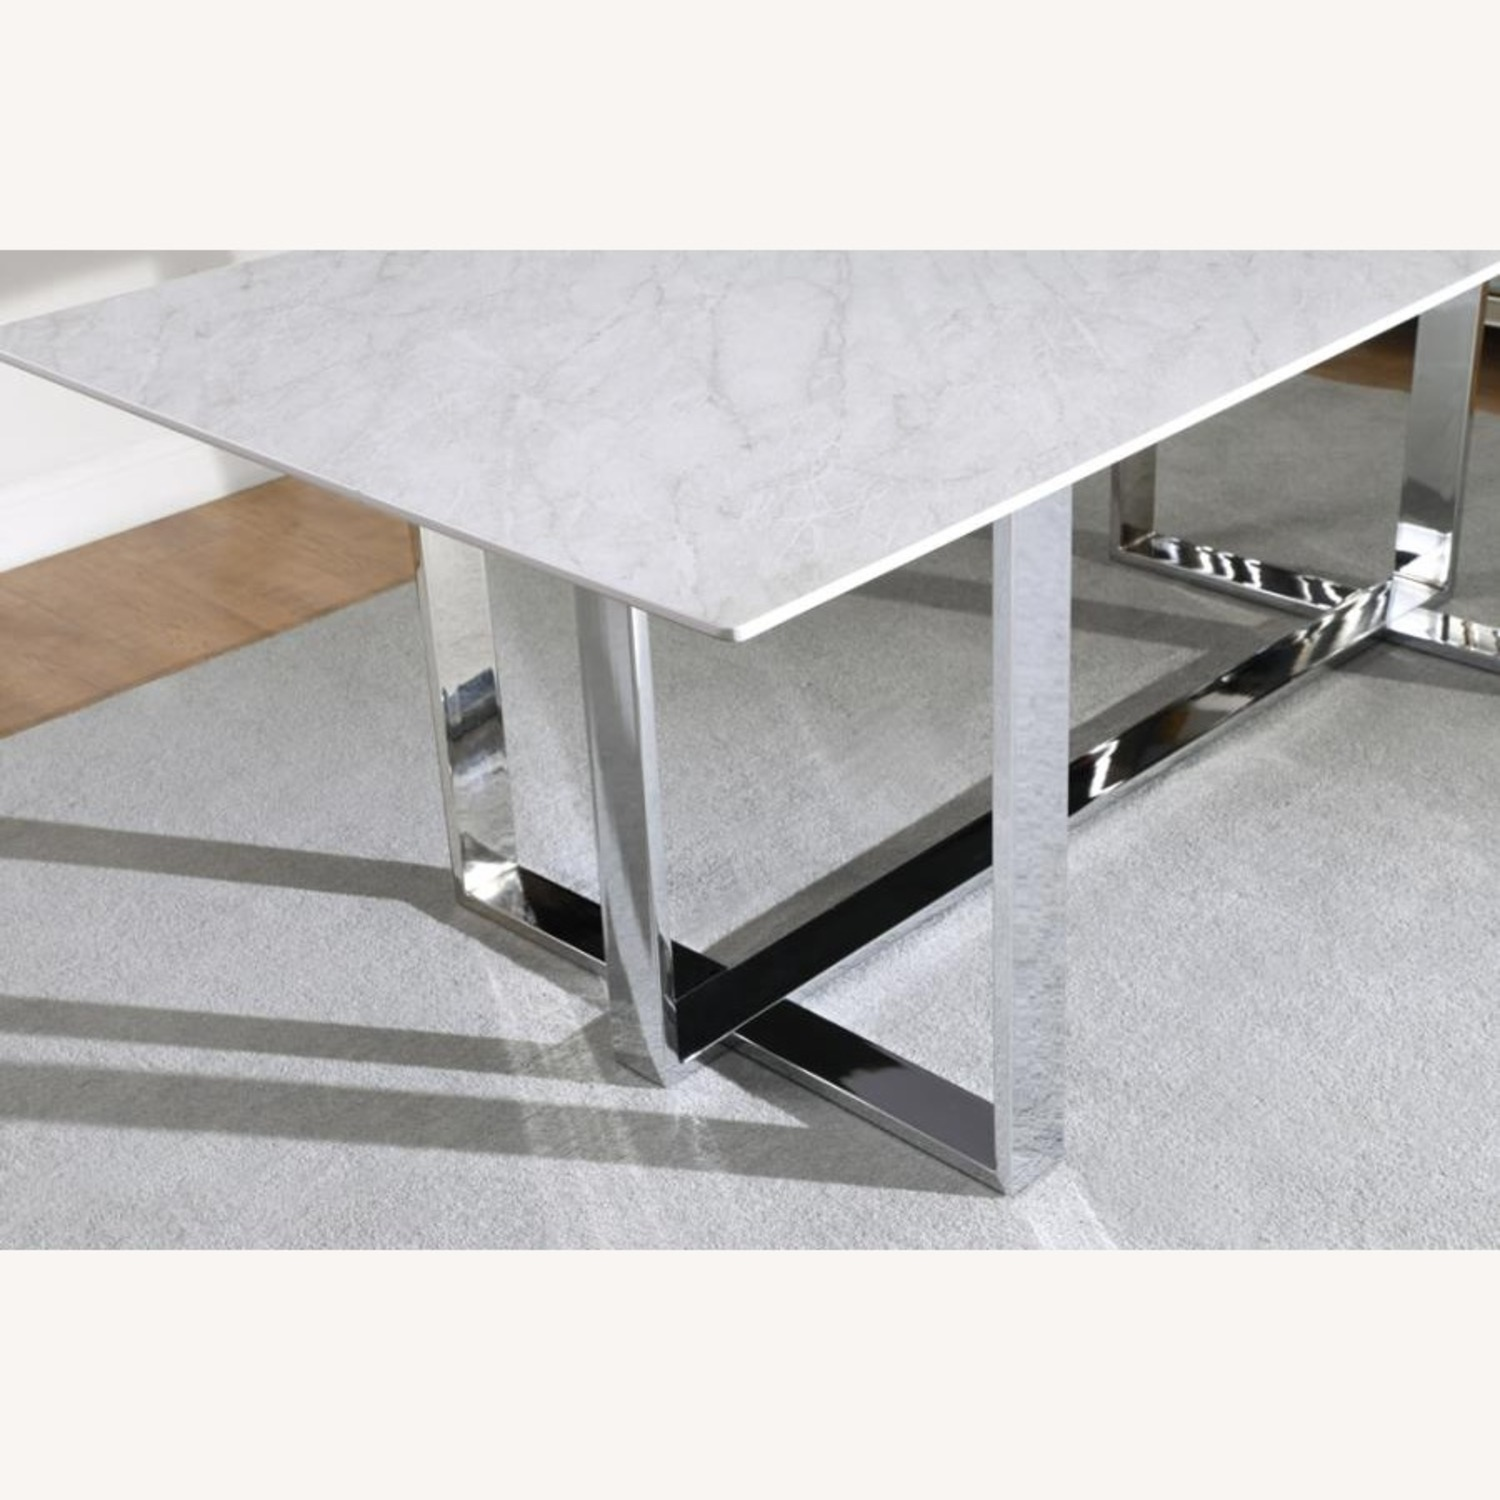 Dining Table In White Thick Tempered Glass Finish - image-4